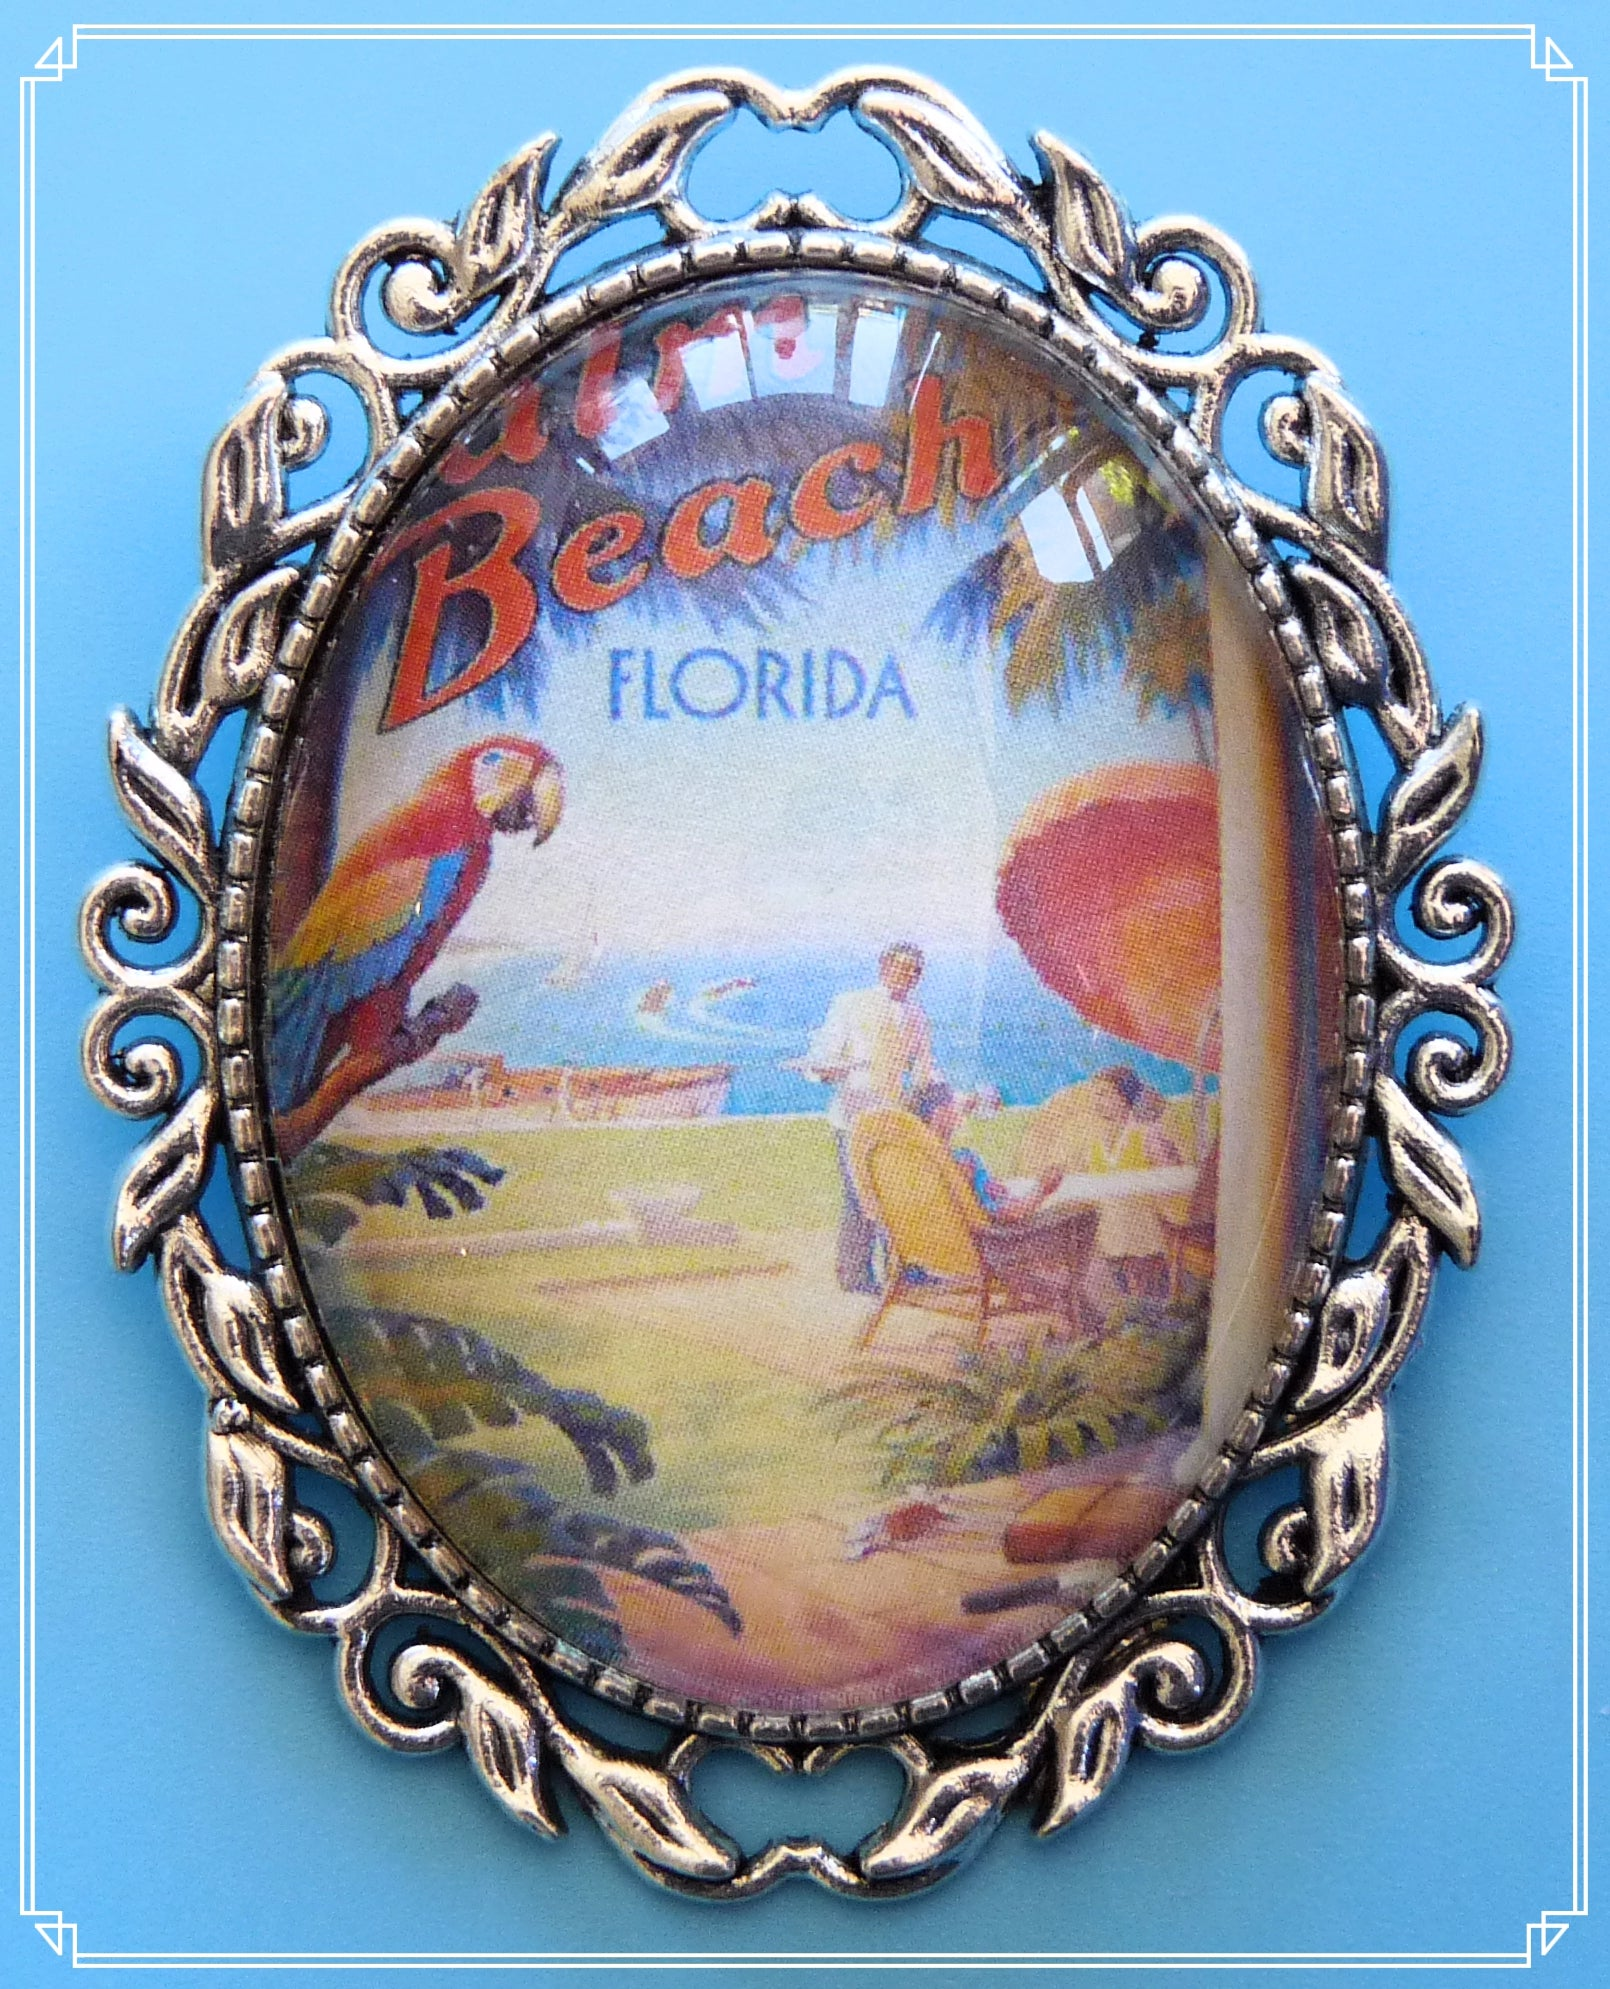 Summertime Memories - Palm Beach holiday brooch